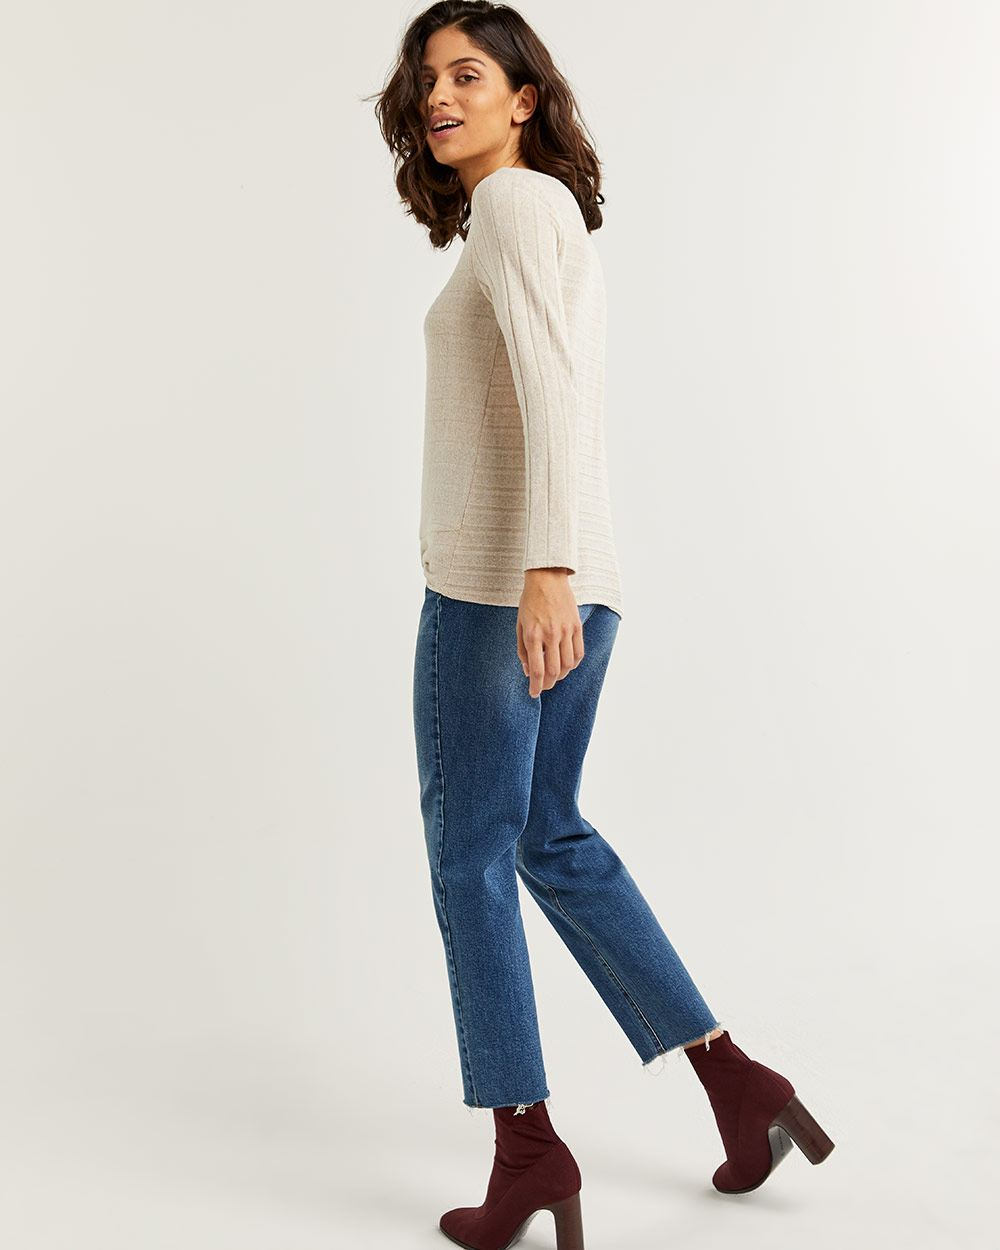 Long Sleeve Tee with Front Knot